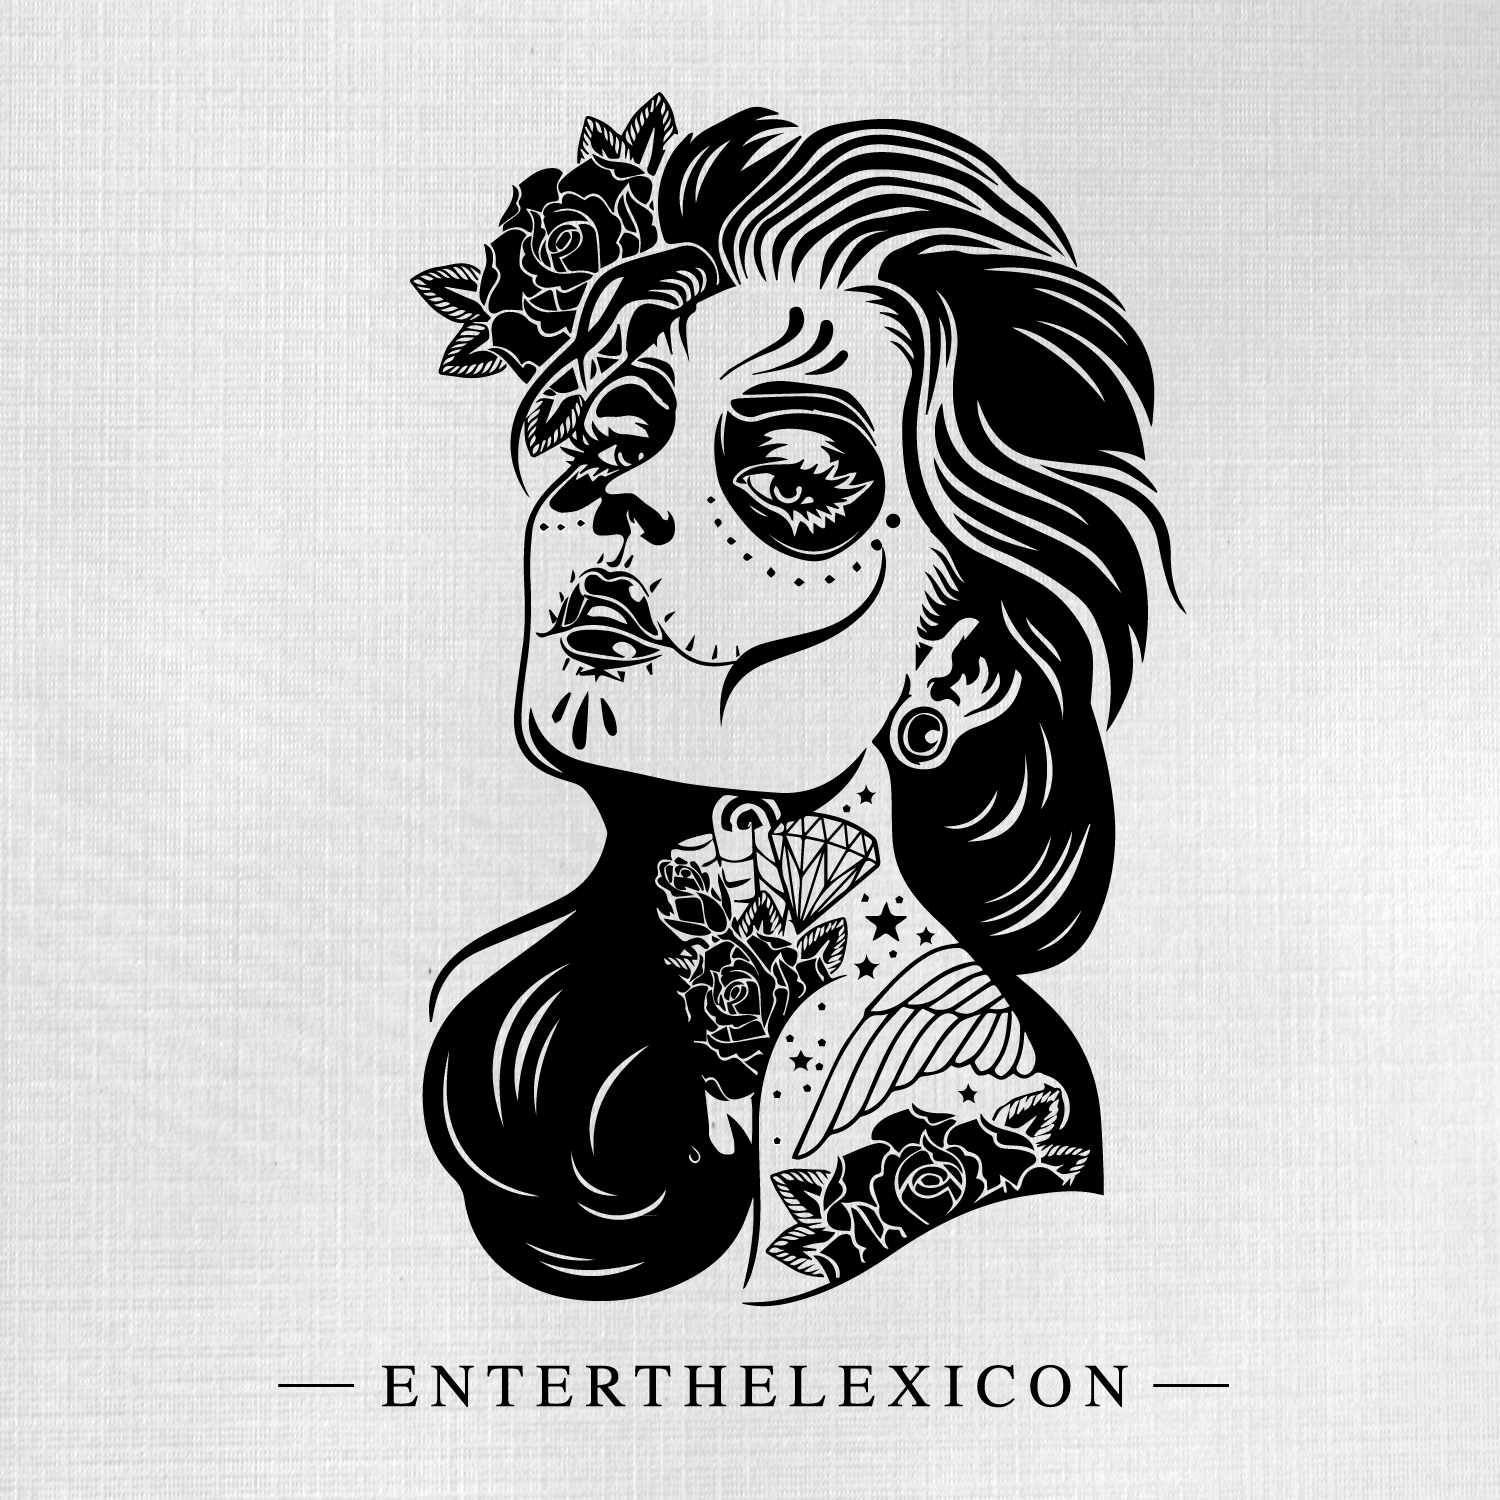 KH014 EnterTheLexicon EP